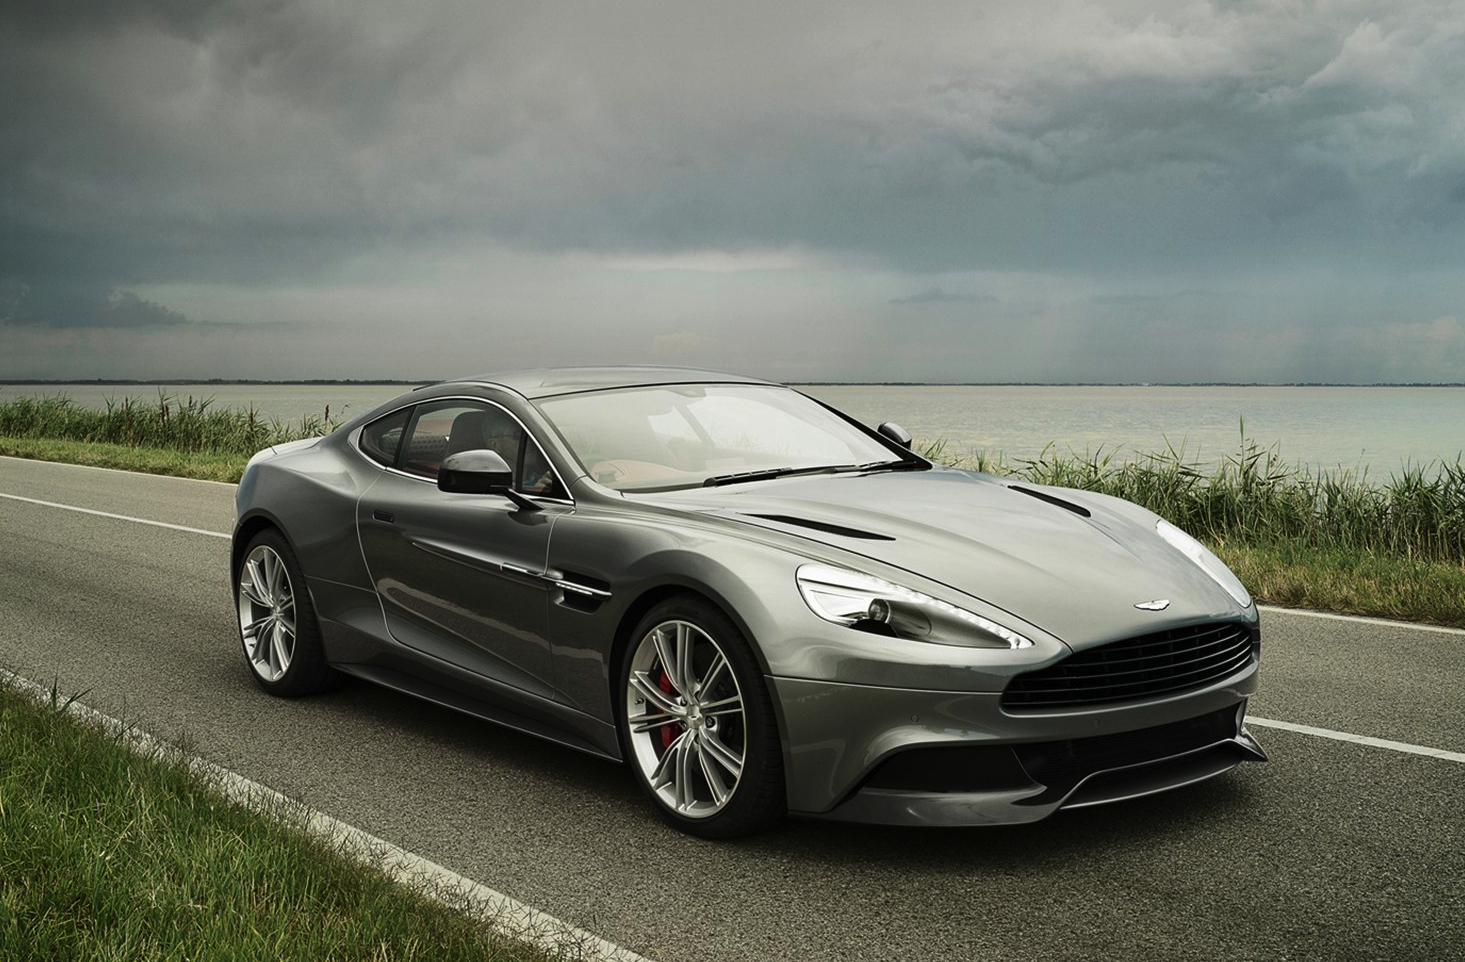 More Bad News For Aston Martin: Moody's Puts Company On Downgrade Watch